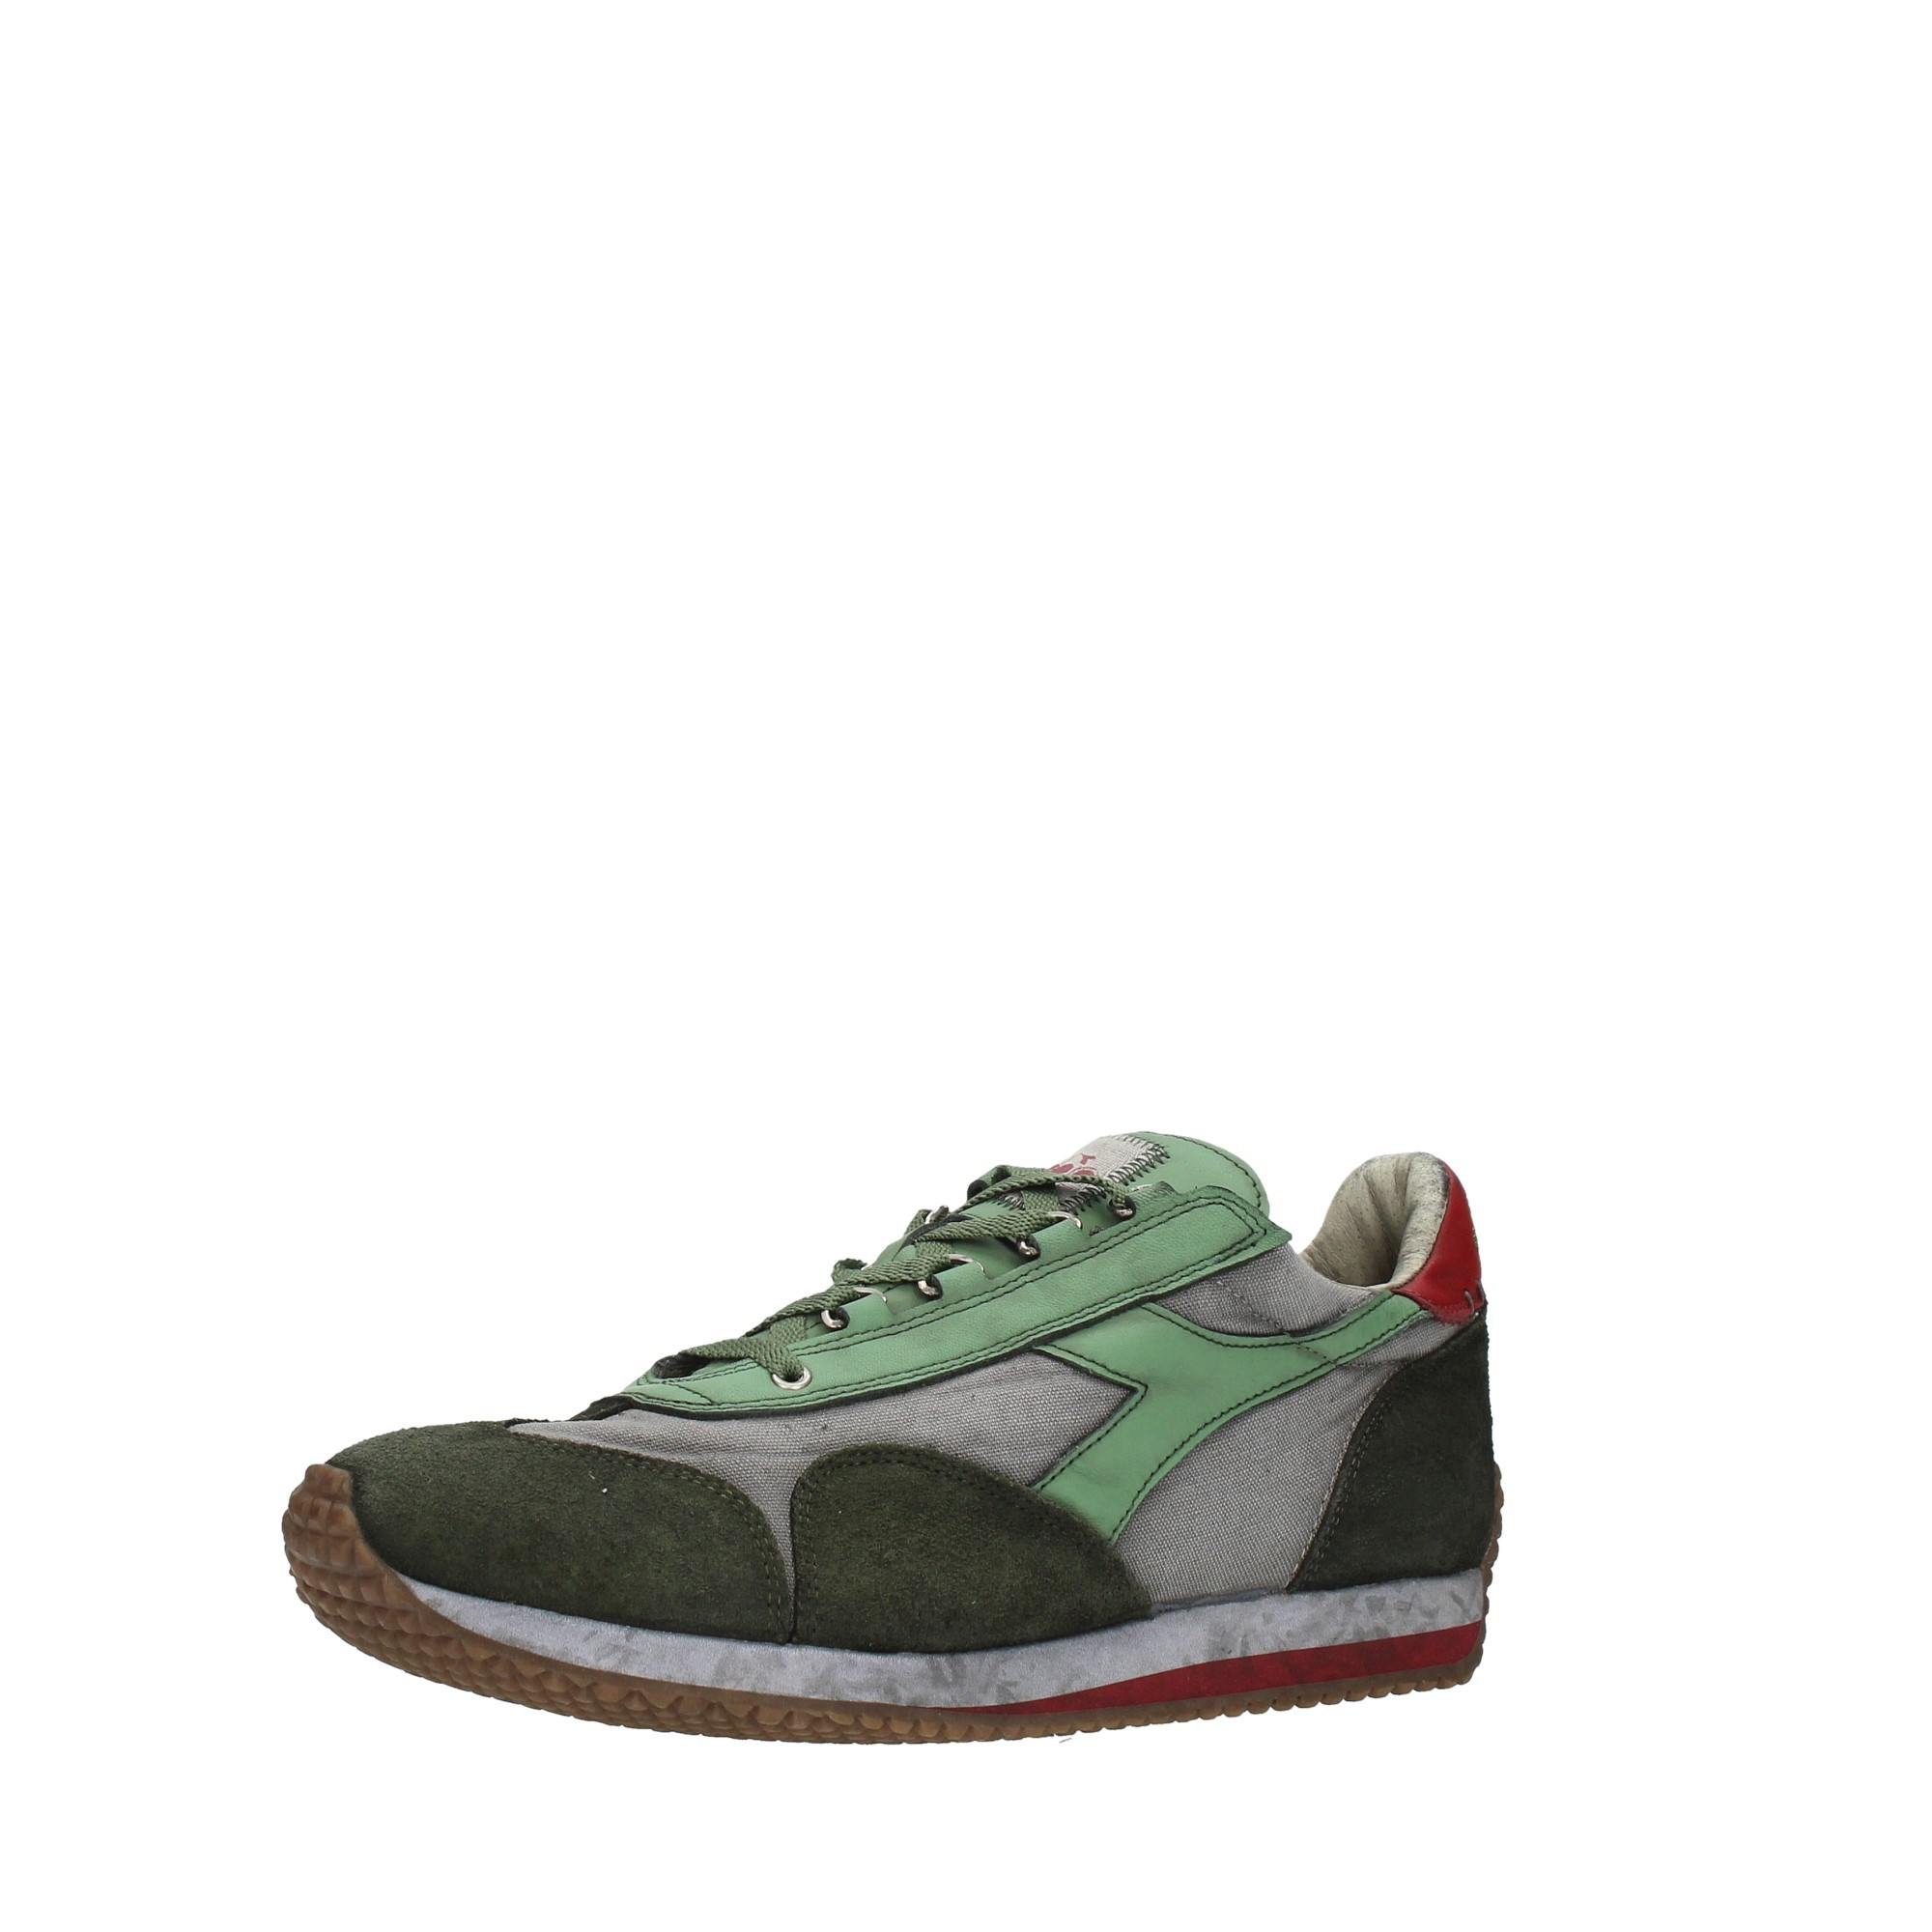 Diadora Heritage Shoes Man Sneakers Green 201.174736